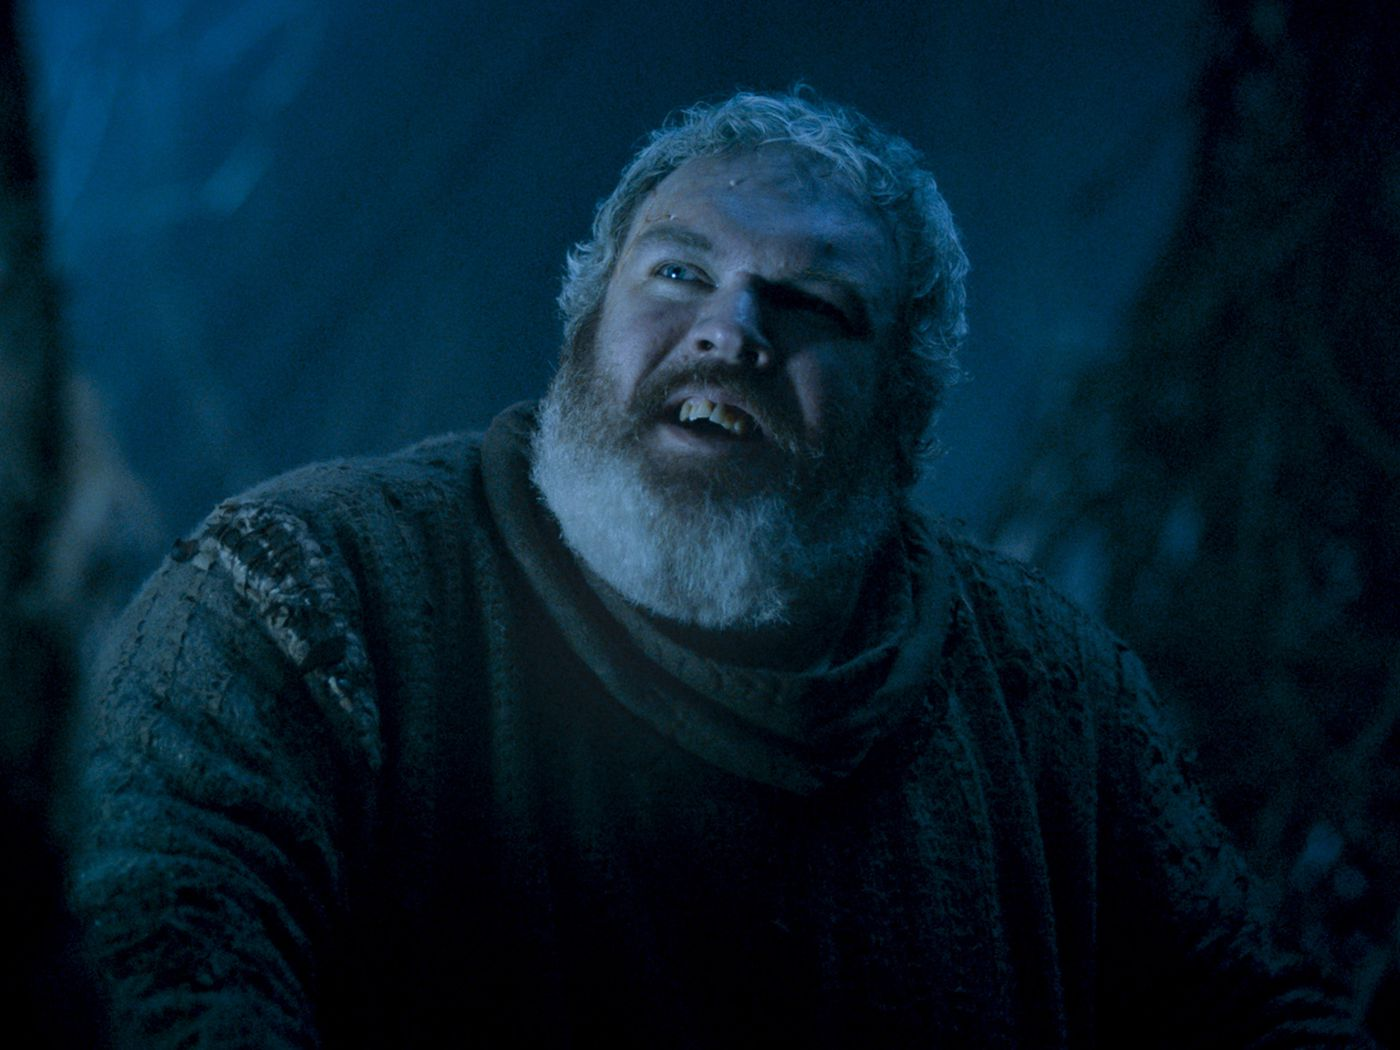 Game of Thrones Hodor Soundboard